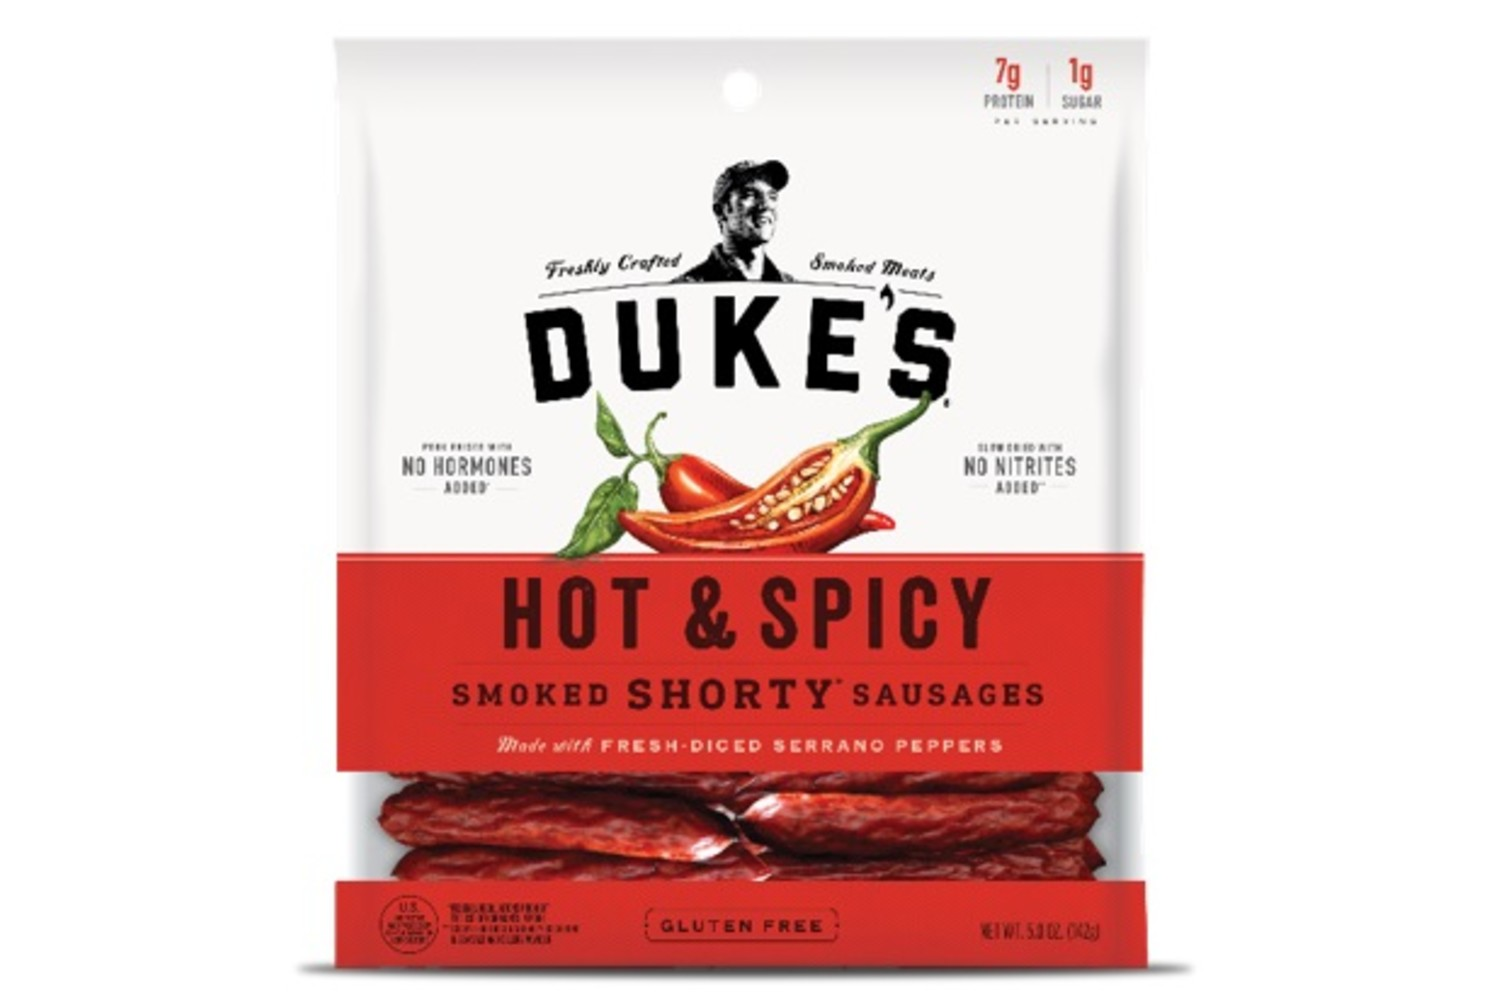 DUKES Hot and Spicy Pork Sausages